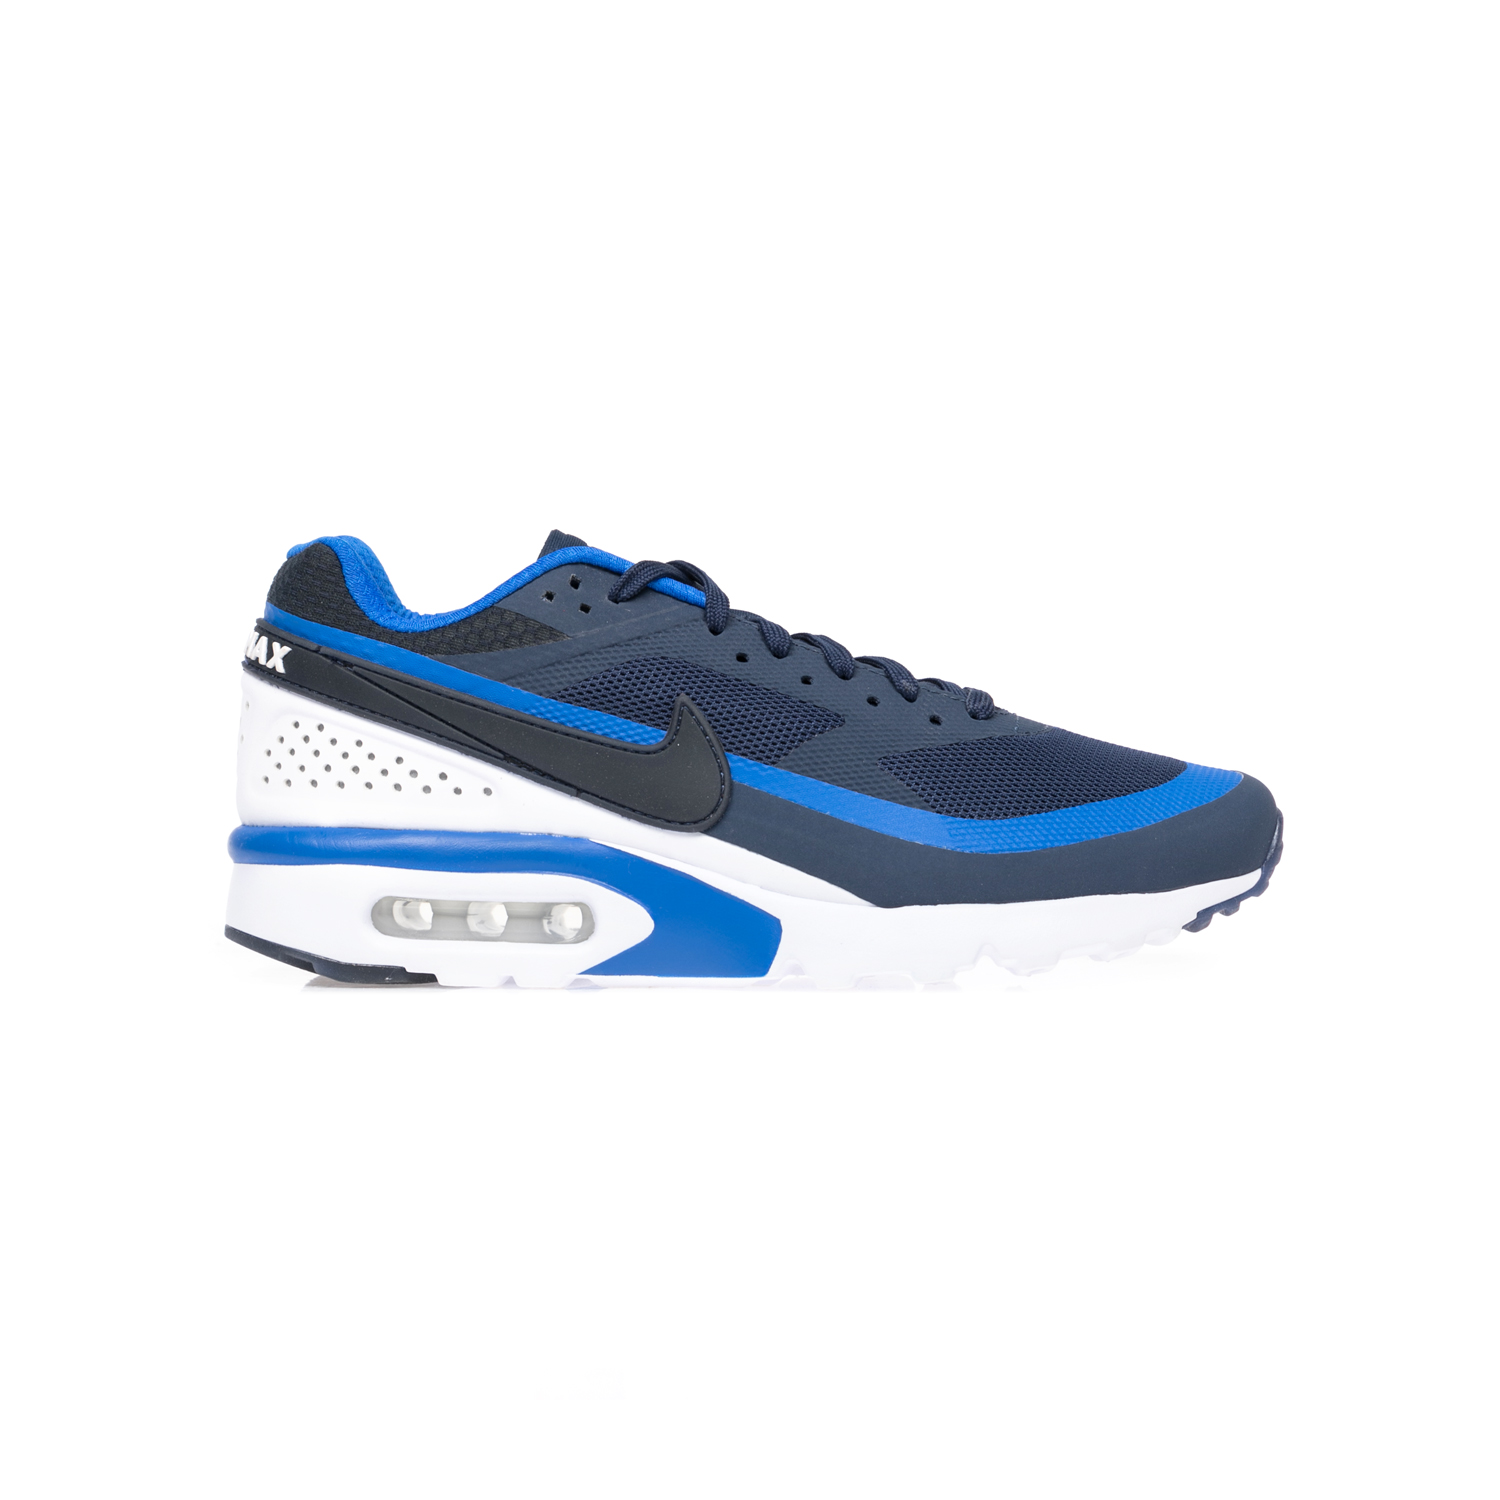 low priced 3de7f 9ddaf NIKE - Αντρικά παπούτσια NIKE AIR MAX BW ULTRA μπλε